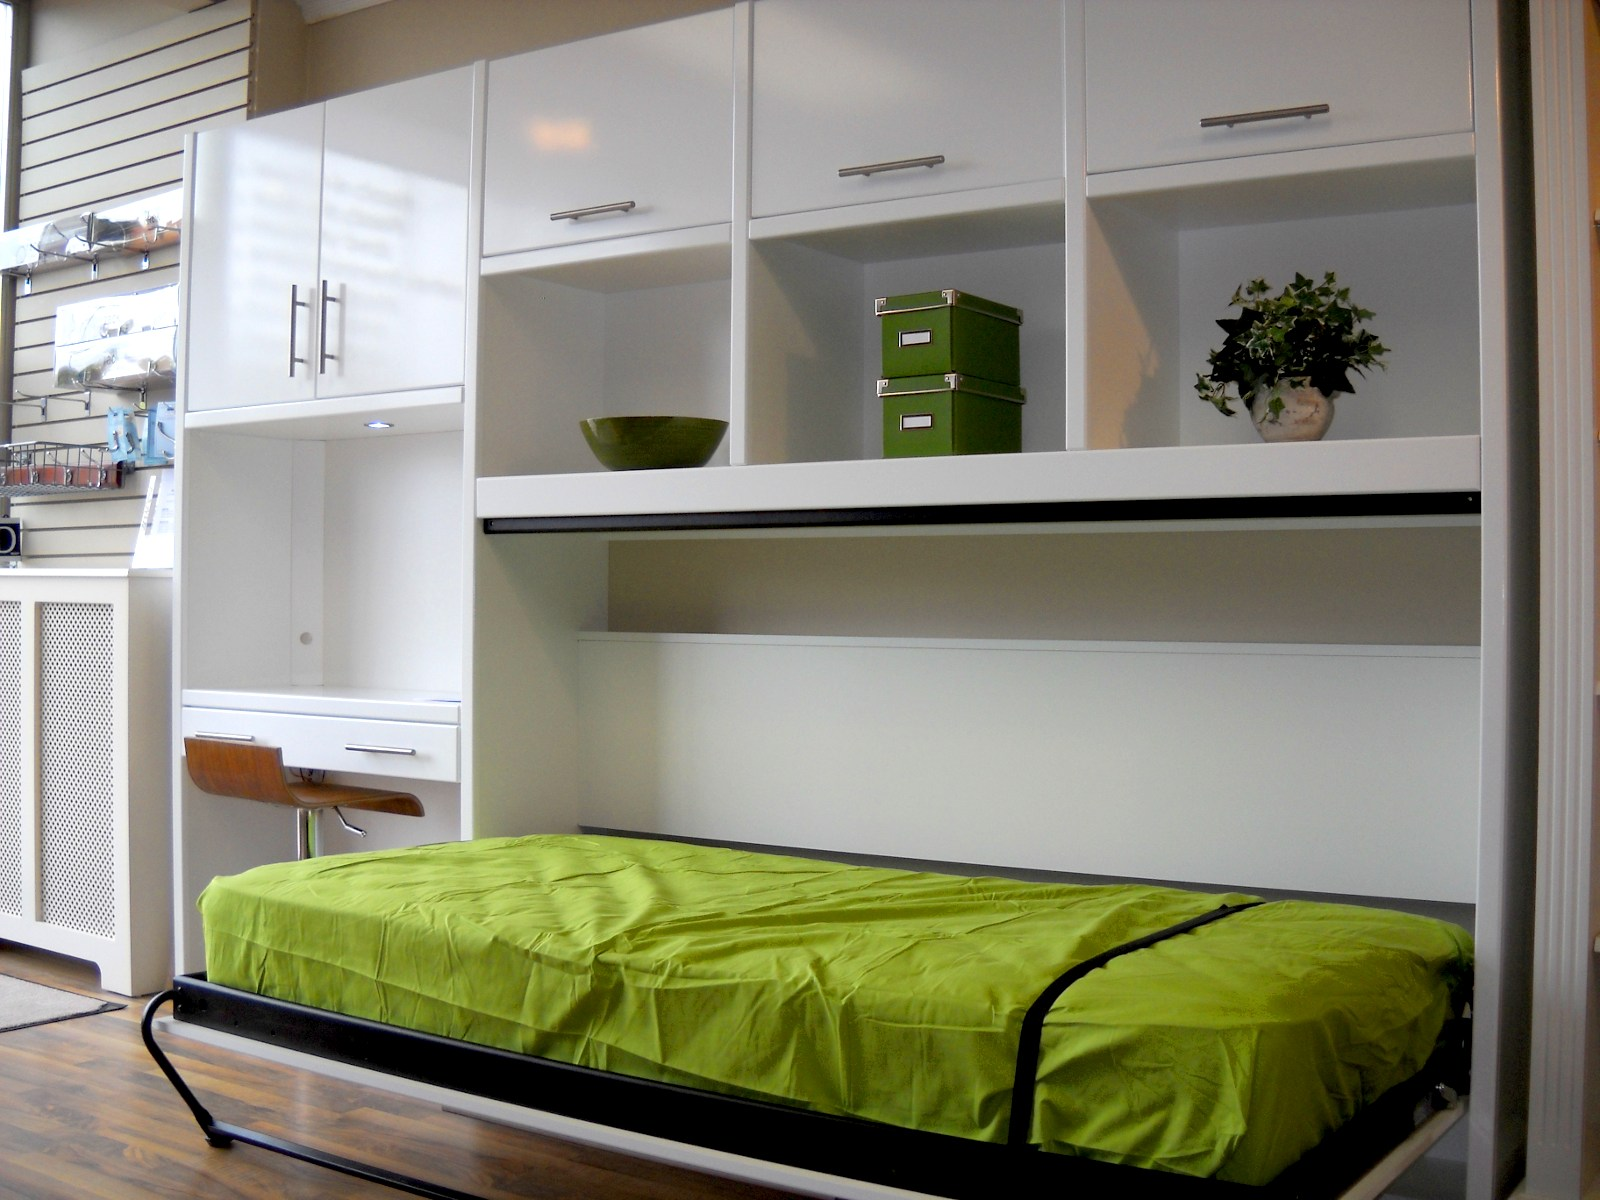 Simple Transformable Murphy Bed Ideas (View 8 of 10)